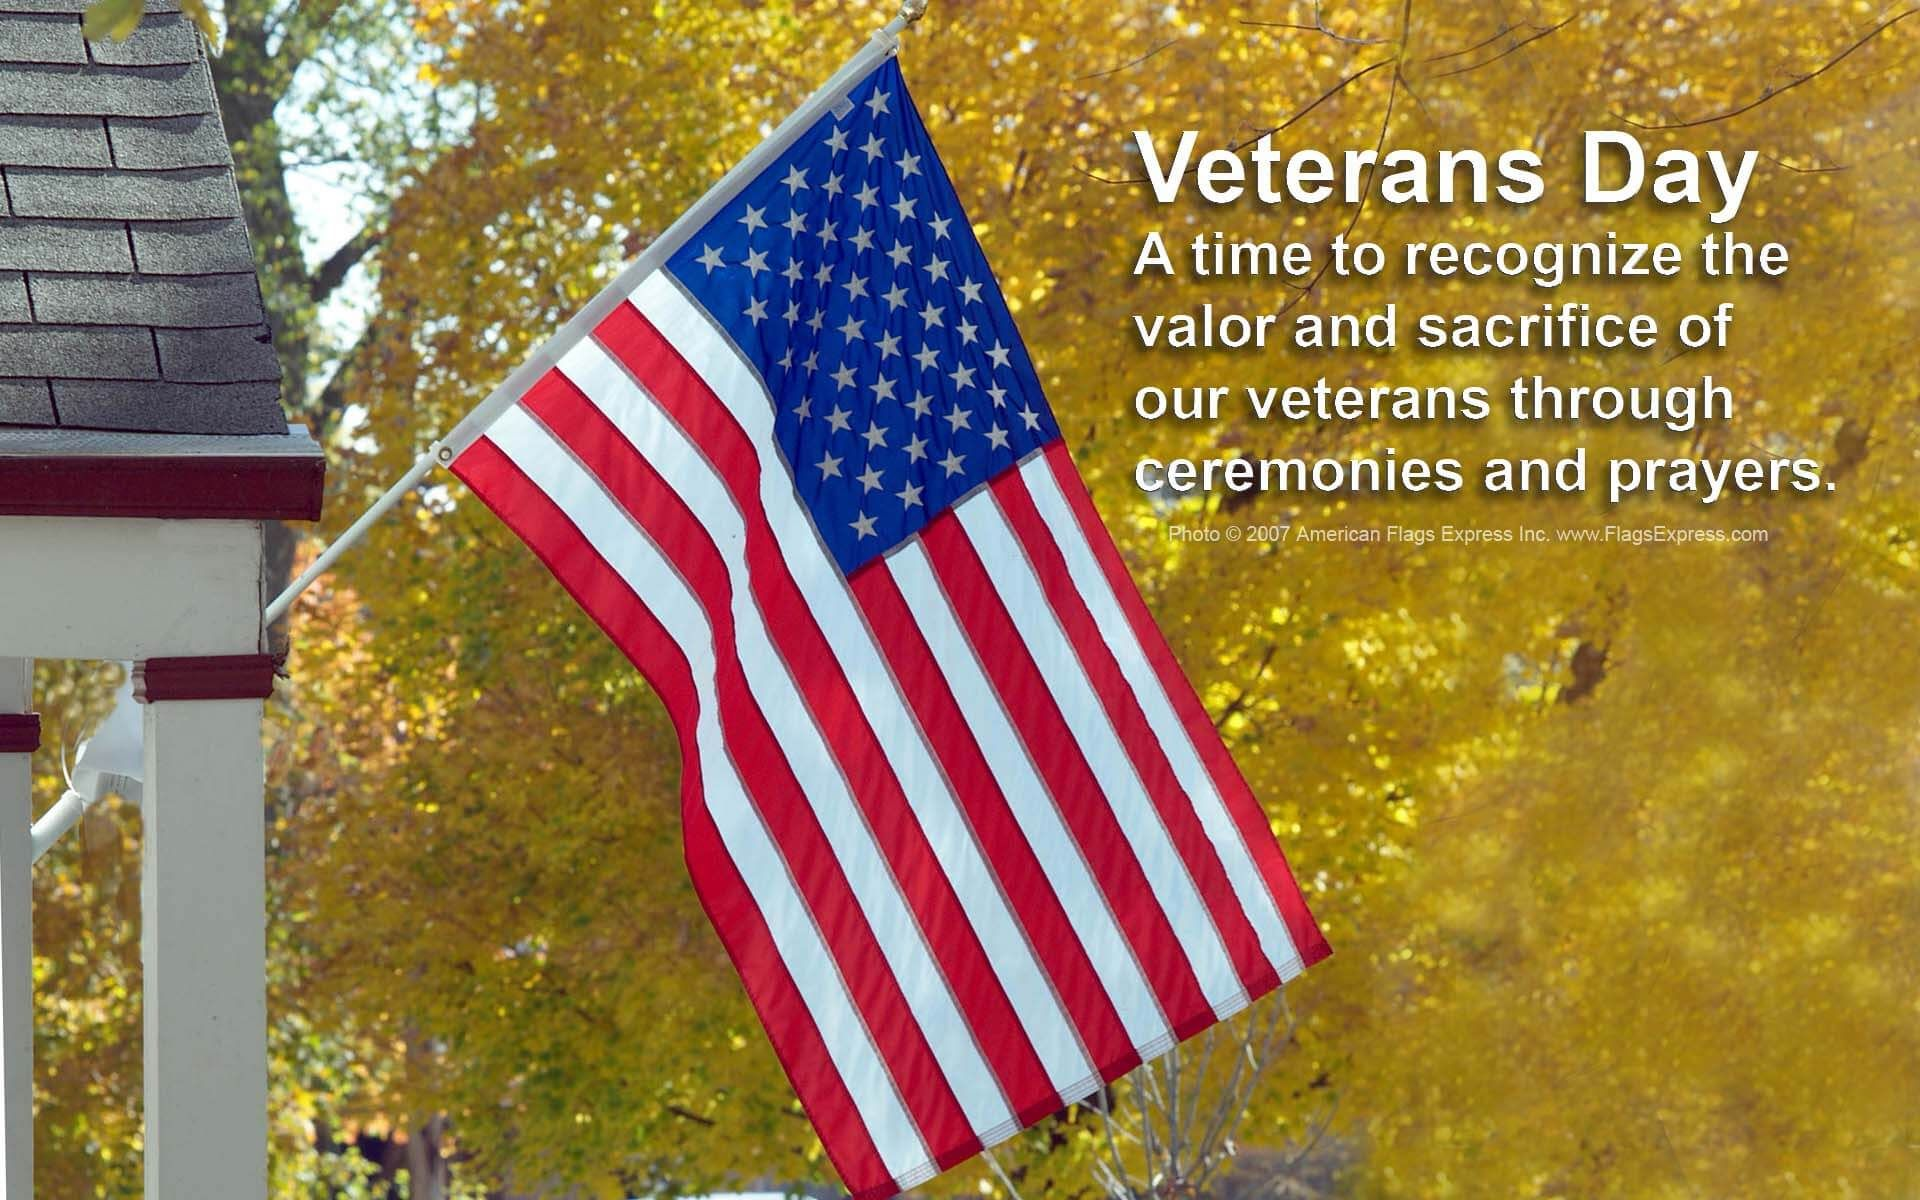 Memorial day poems veterans poems prayers - Veterans Day Quotes Sayings Poems Sms Images Photos